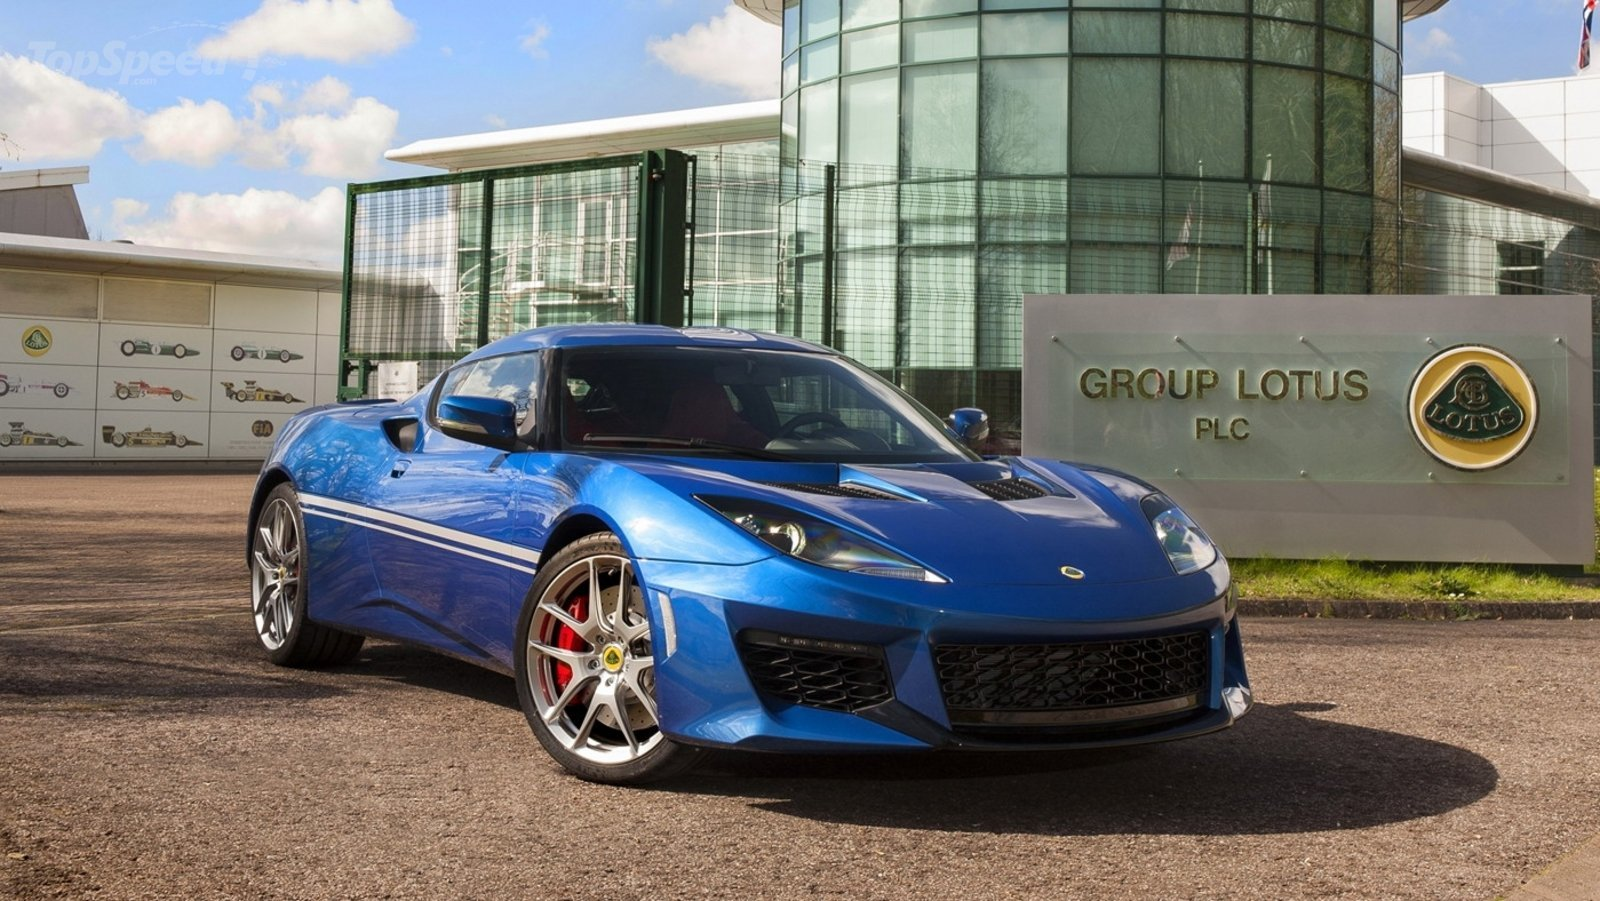 Moving Company Reviews >> 2016 Lotus Evora 400 Hethel Edition Review - Top Speed